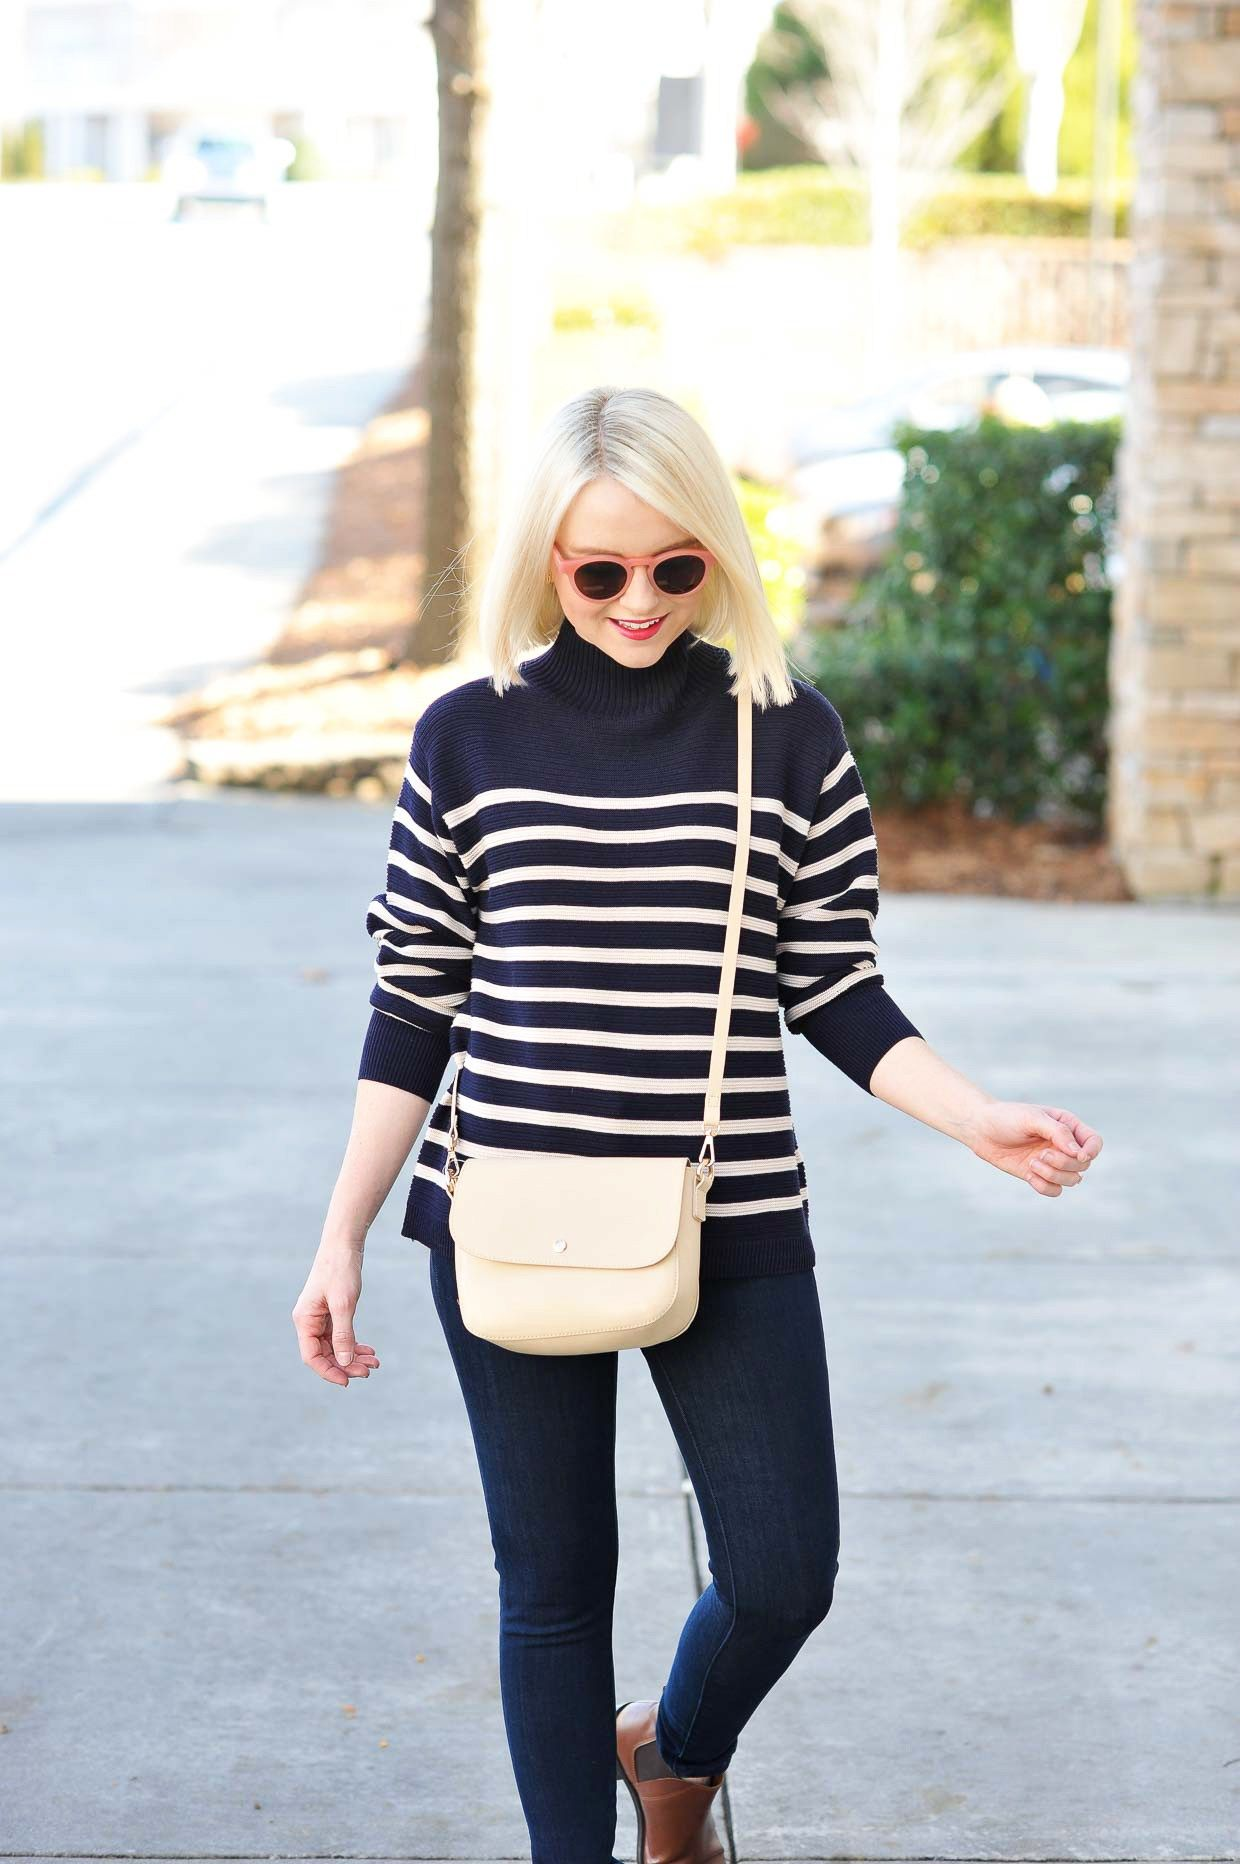 faa27c5dc6c Topshop Striped Turtleneck Sweater - Poor Little It Girl